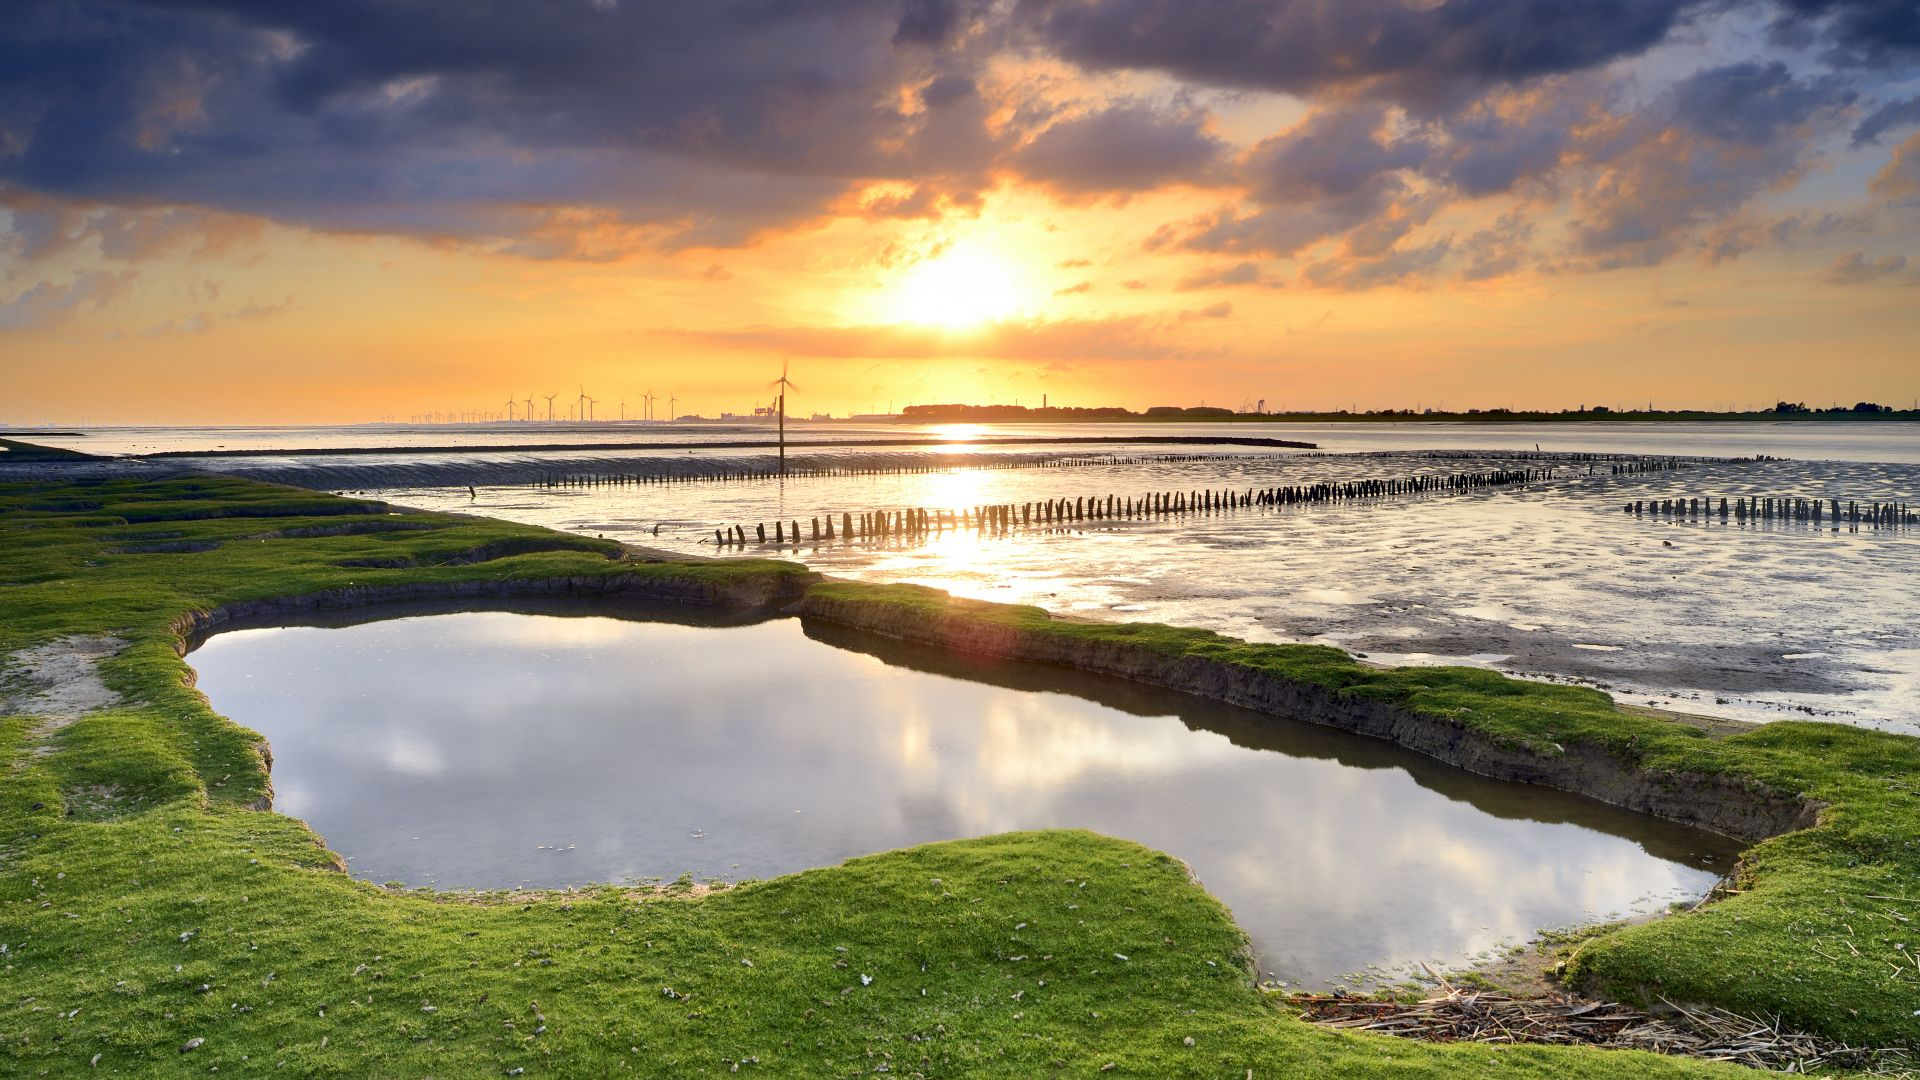 Dollern: View of the sunny mudflats in the Lower Saxony Wadden Sea National Park